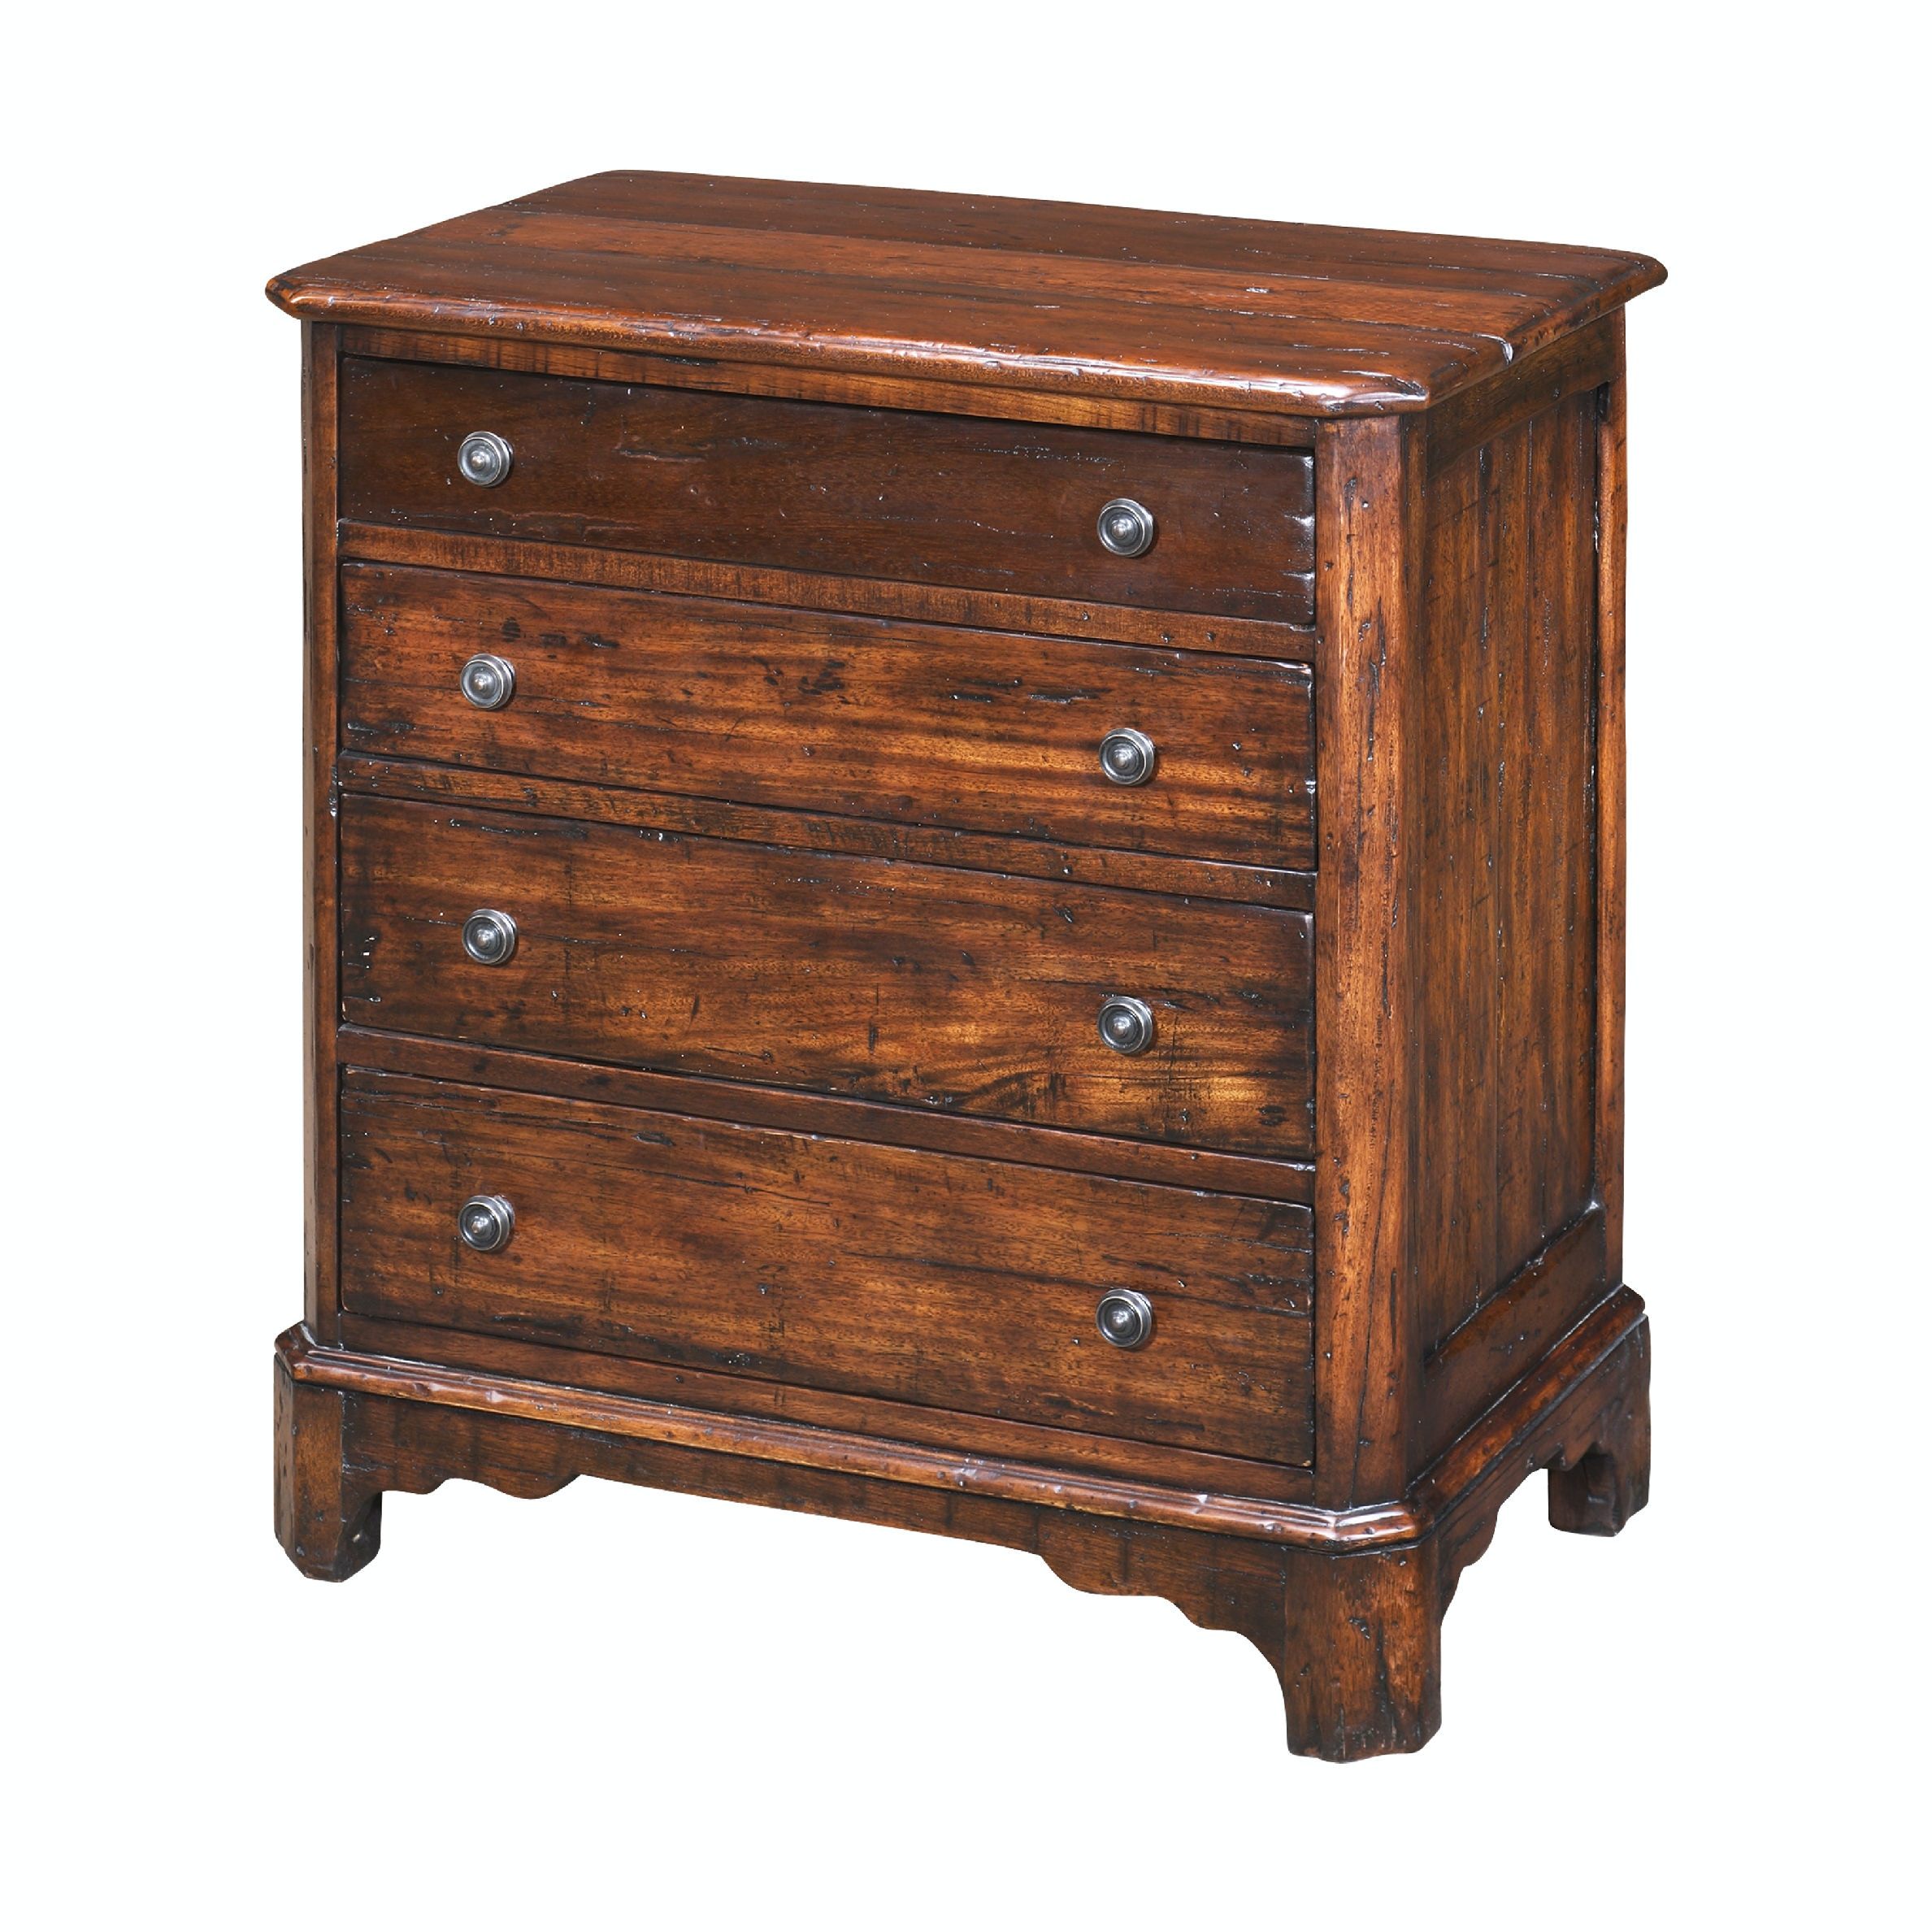 hickory chair bedside tables swivel chairs office theodore alexander bedroom attic cb60003